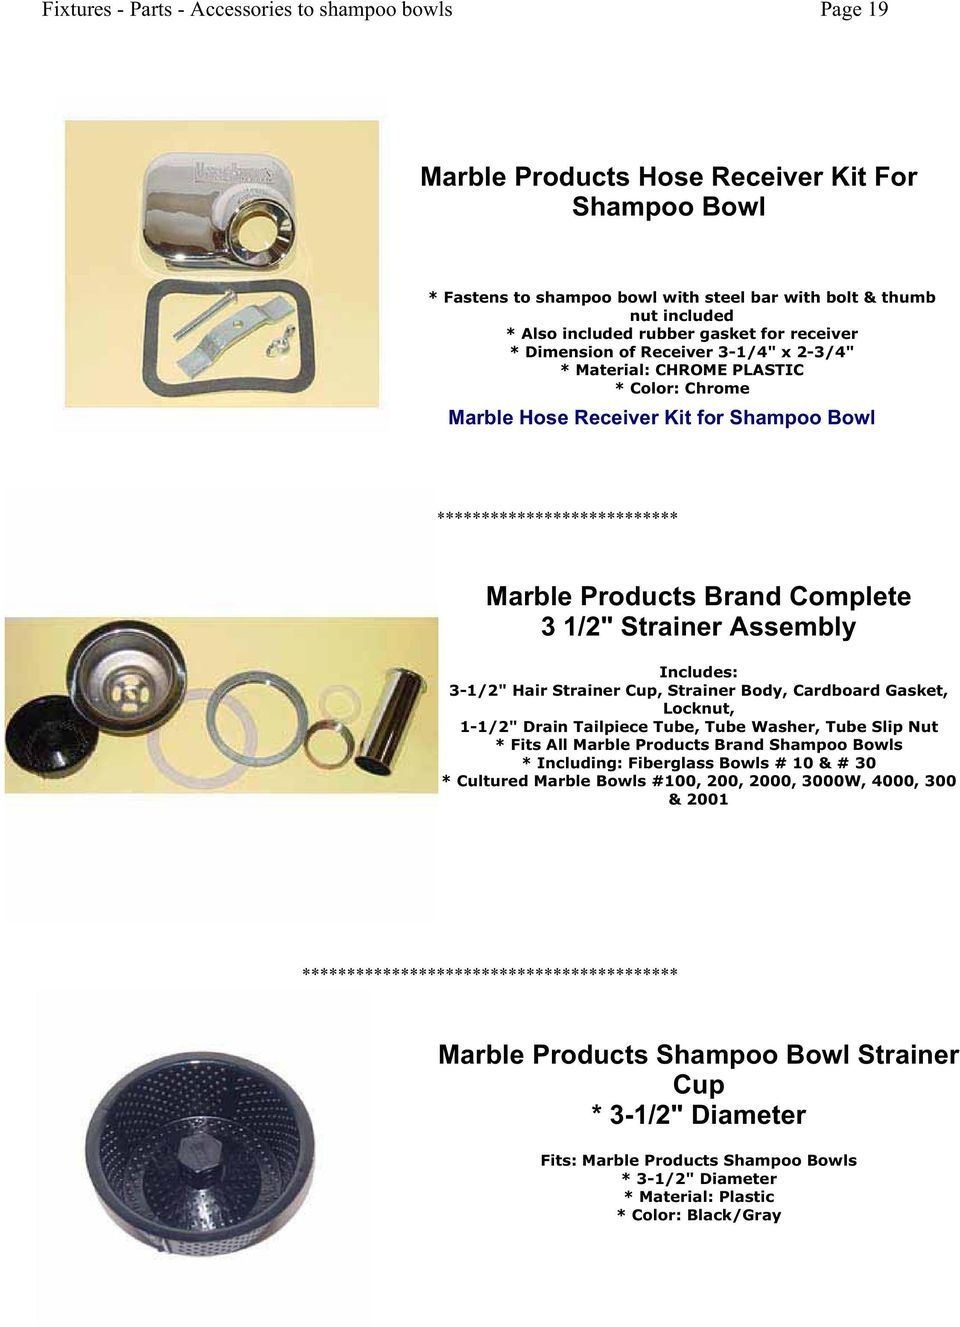 "Strainer Body, Cardboard Gasket, Locknut, 1-1/2"" Drain Tailpiece Tube, Tube Washer, Tube Slip Nut * Fits All Marble Products Brand Shampoo Bowls * Including: Fiberglass Bowls # 10 & # 30 * Cultured"